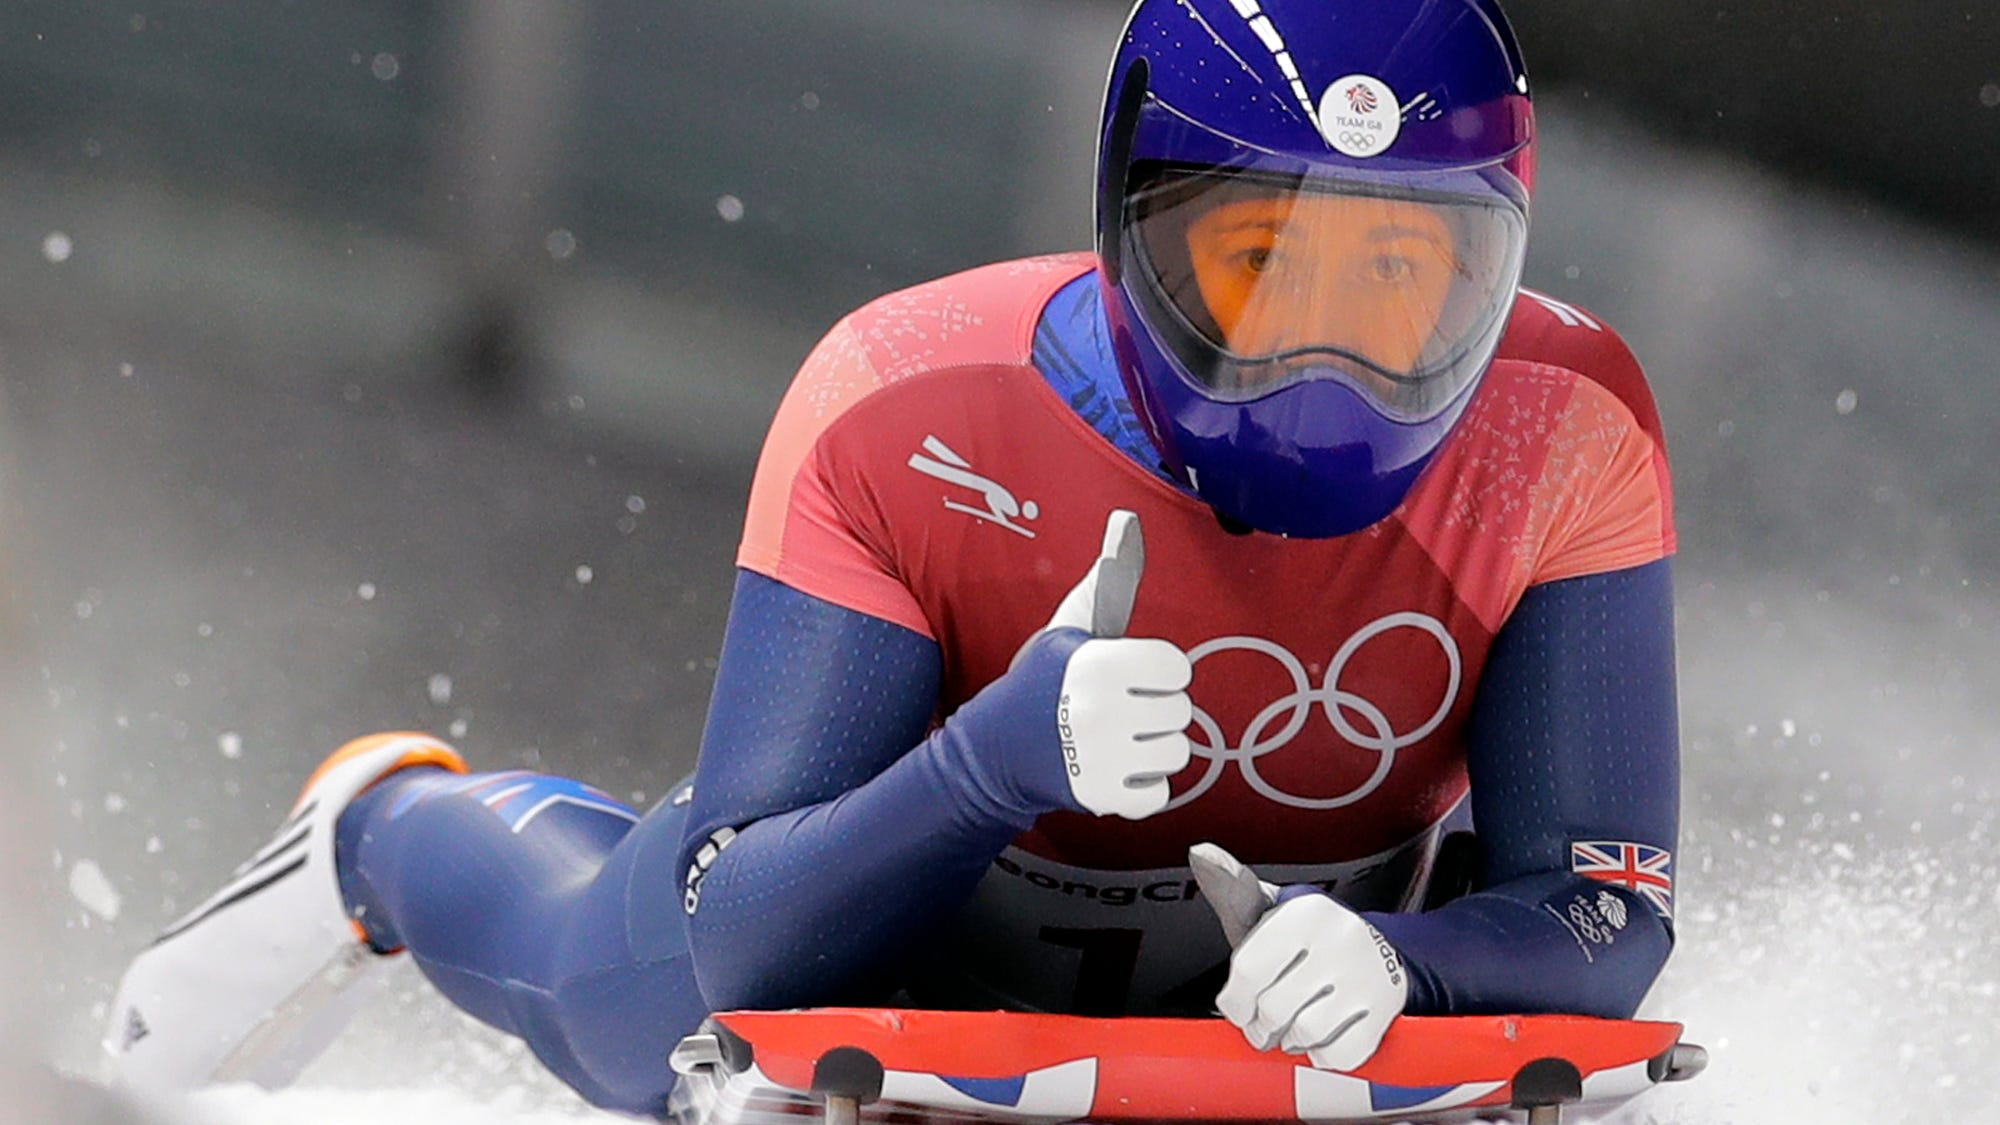 0e66b33944 Loelling leads with many close pursuers in womens skeleton jpg 3200x1680 Womens  skeleton